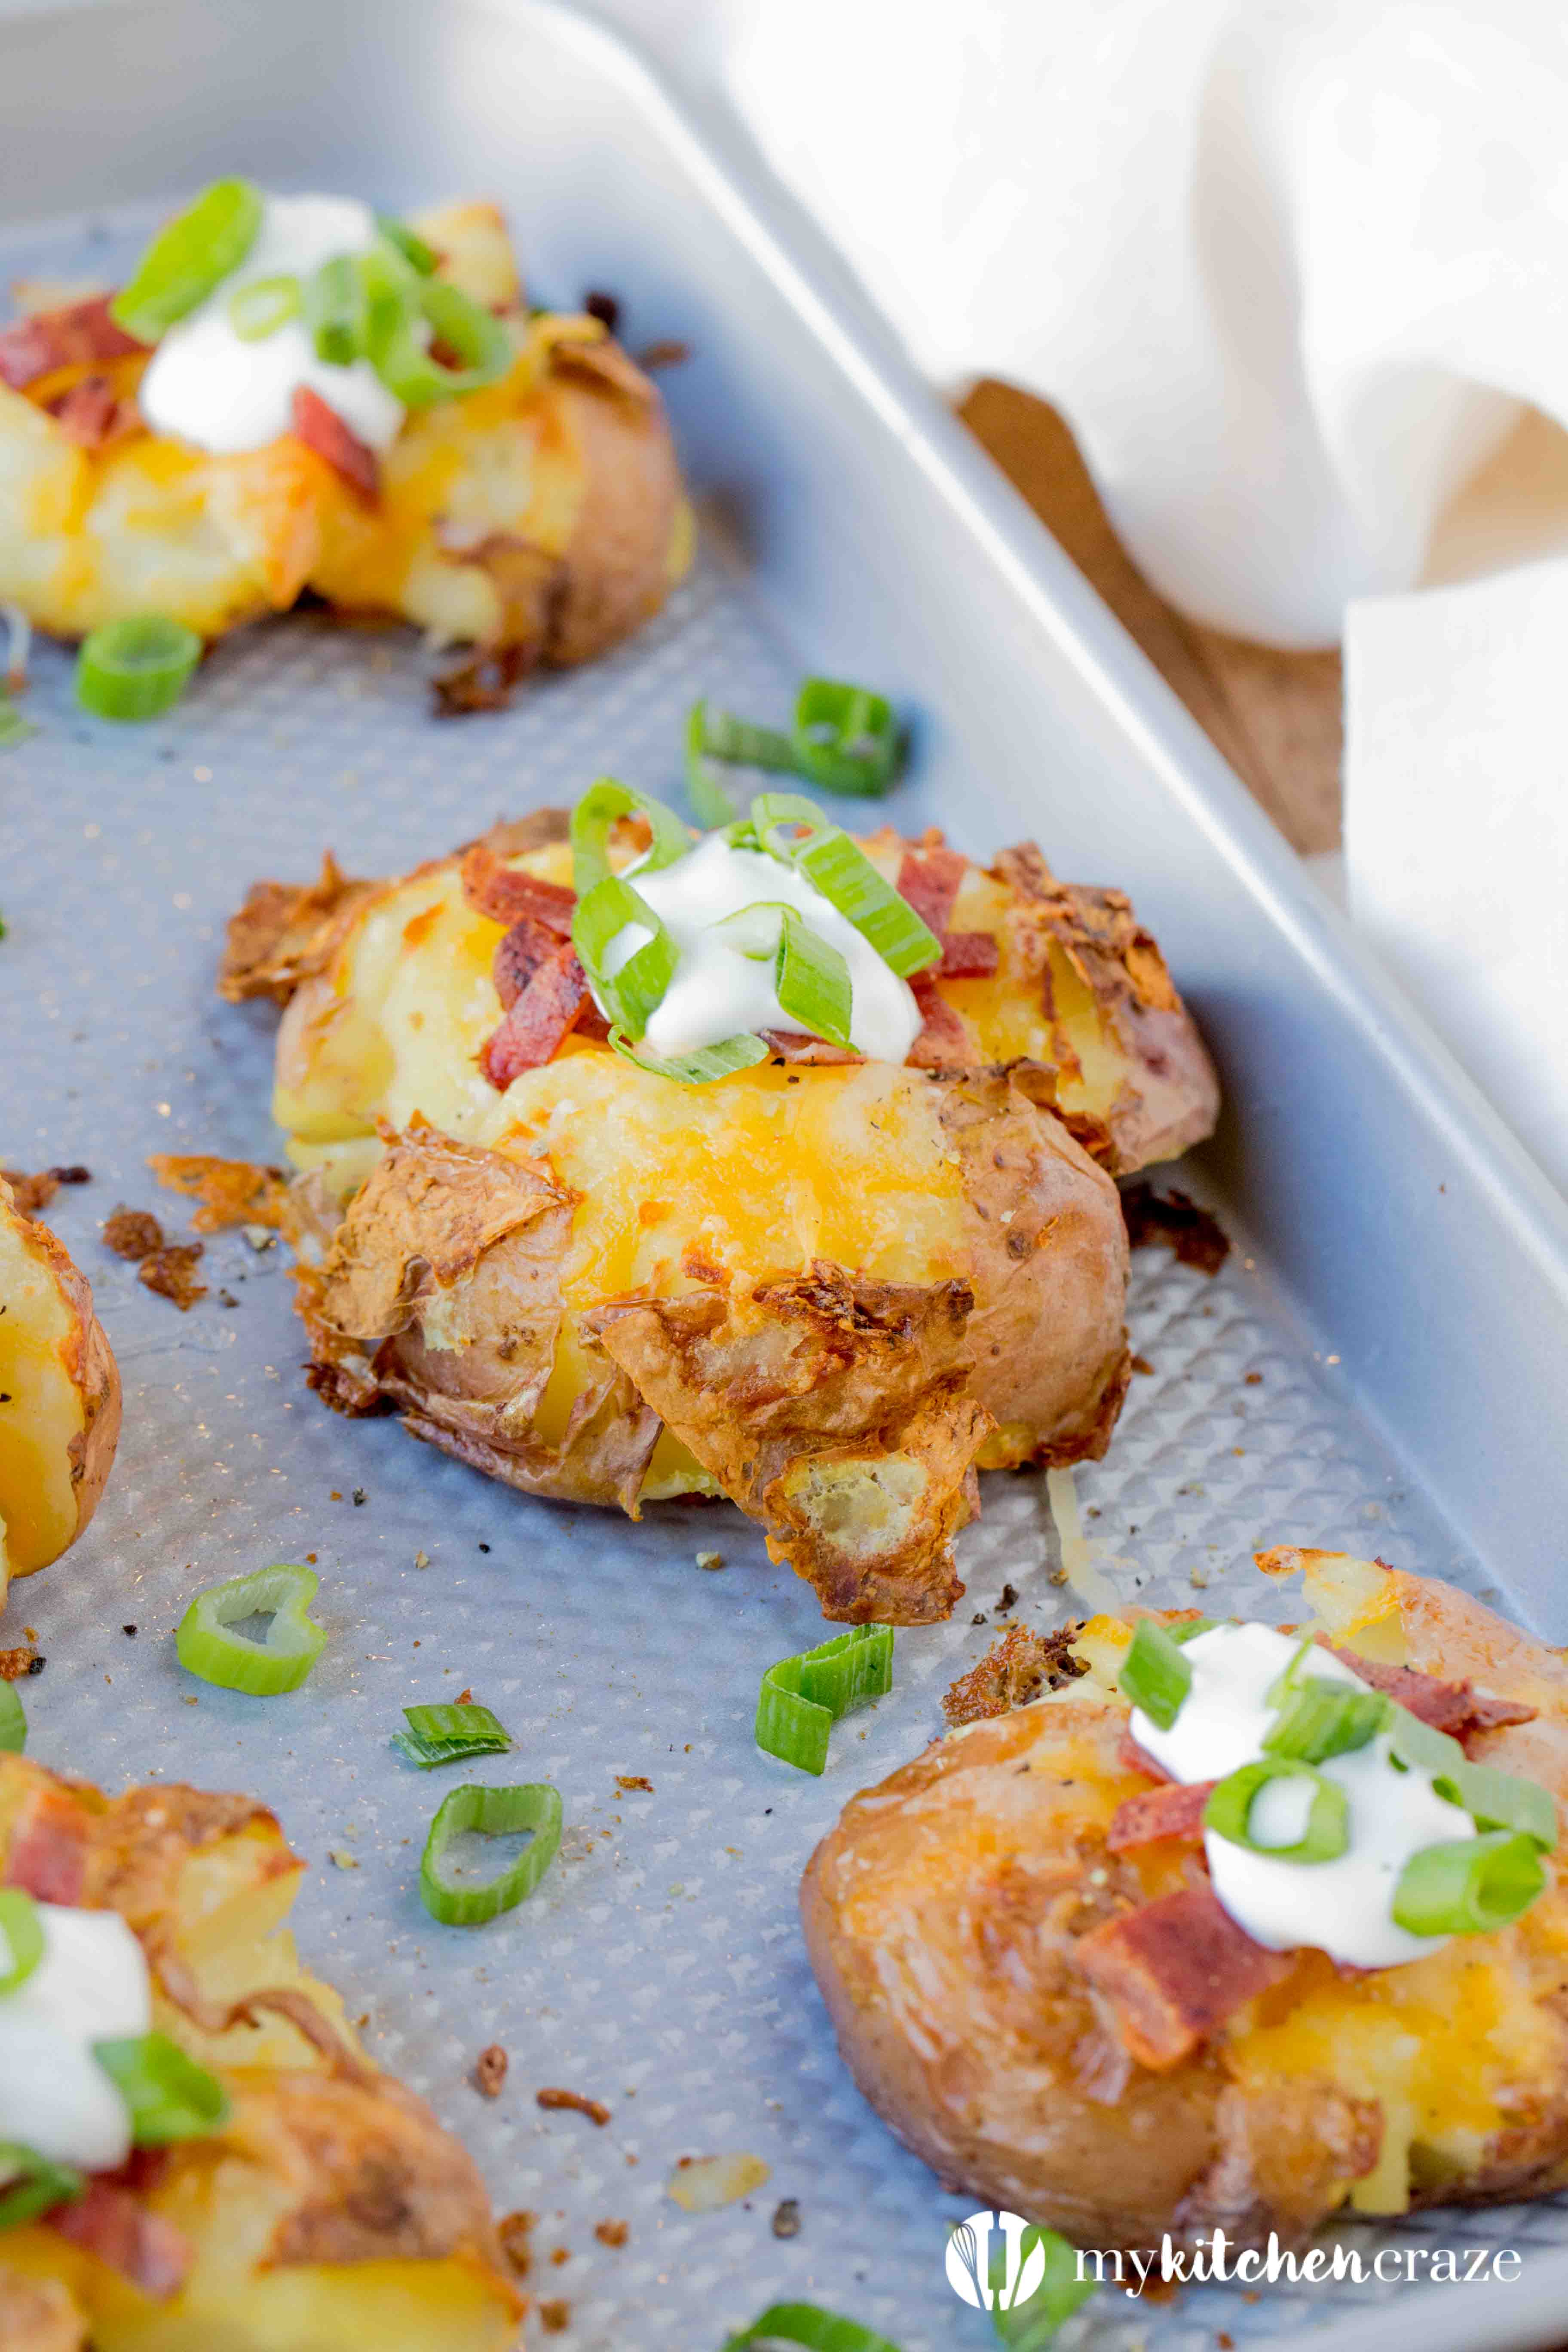 Loaded Smashed Potatoes are a no fuss and delicious side dish. Loaded with all the yummy things you'd find in a loaded baked potato. This is one side everyone will love!